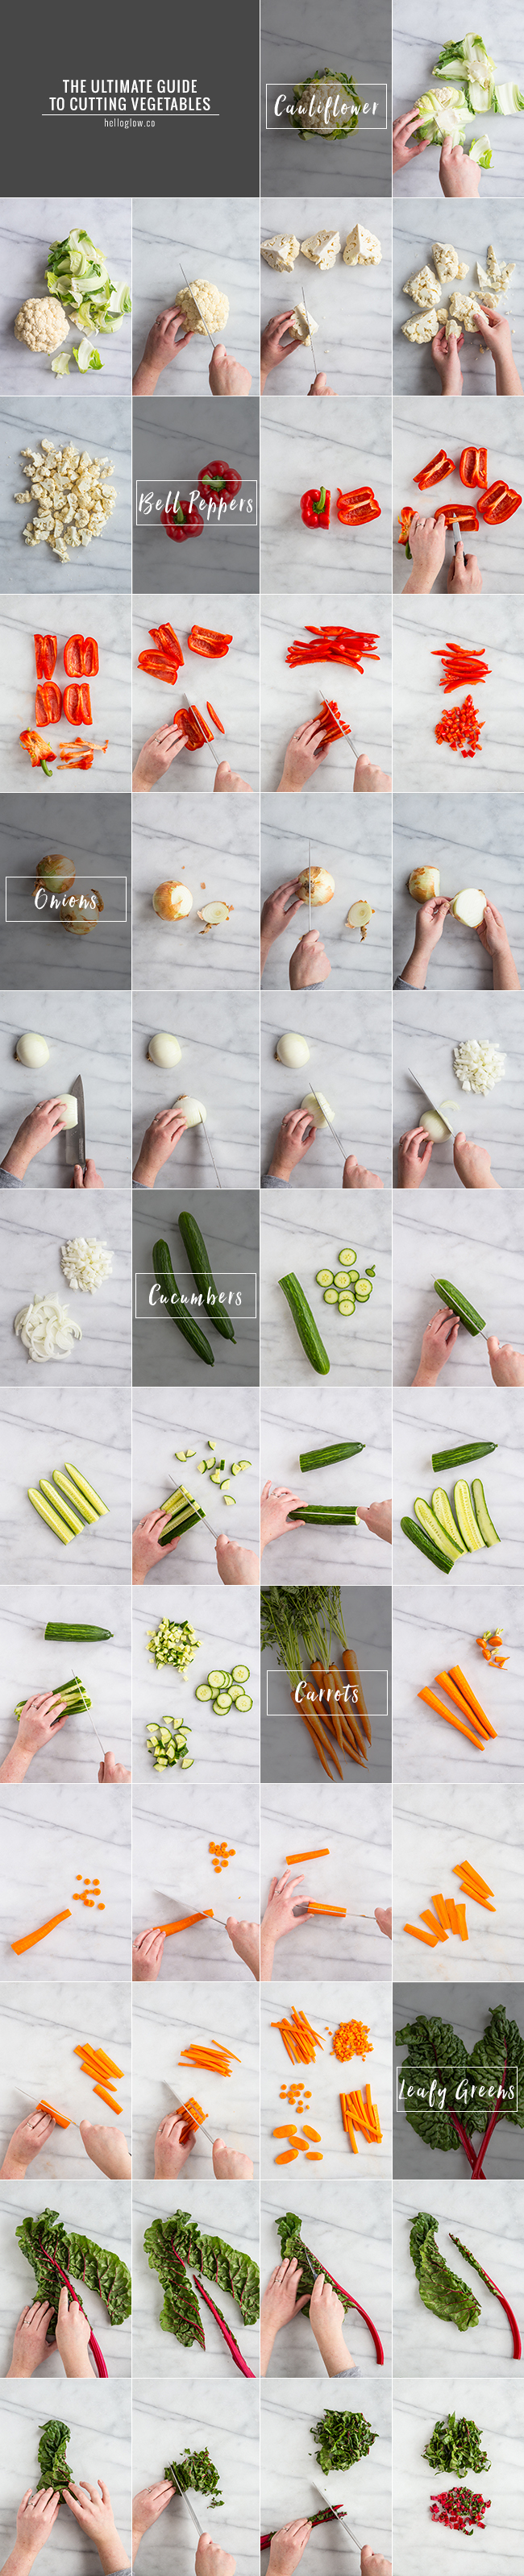 The Ultimate Guide to Cutting Vegetables